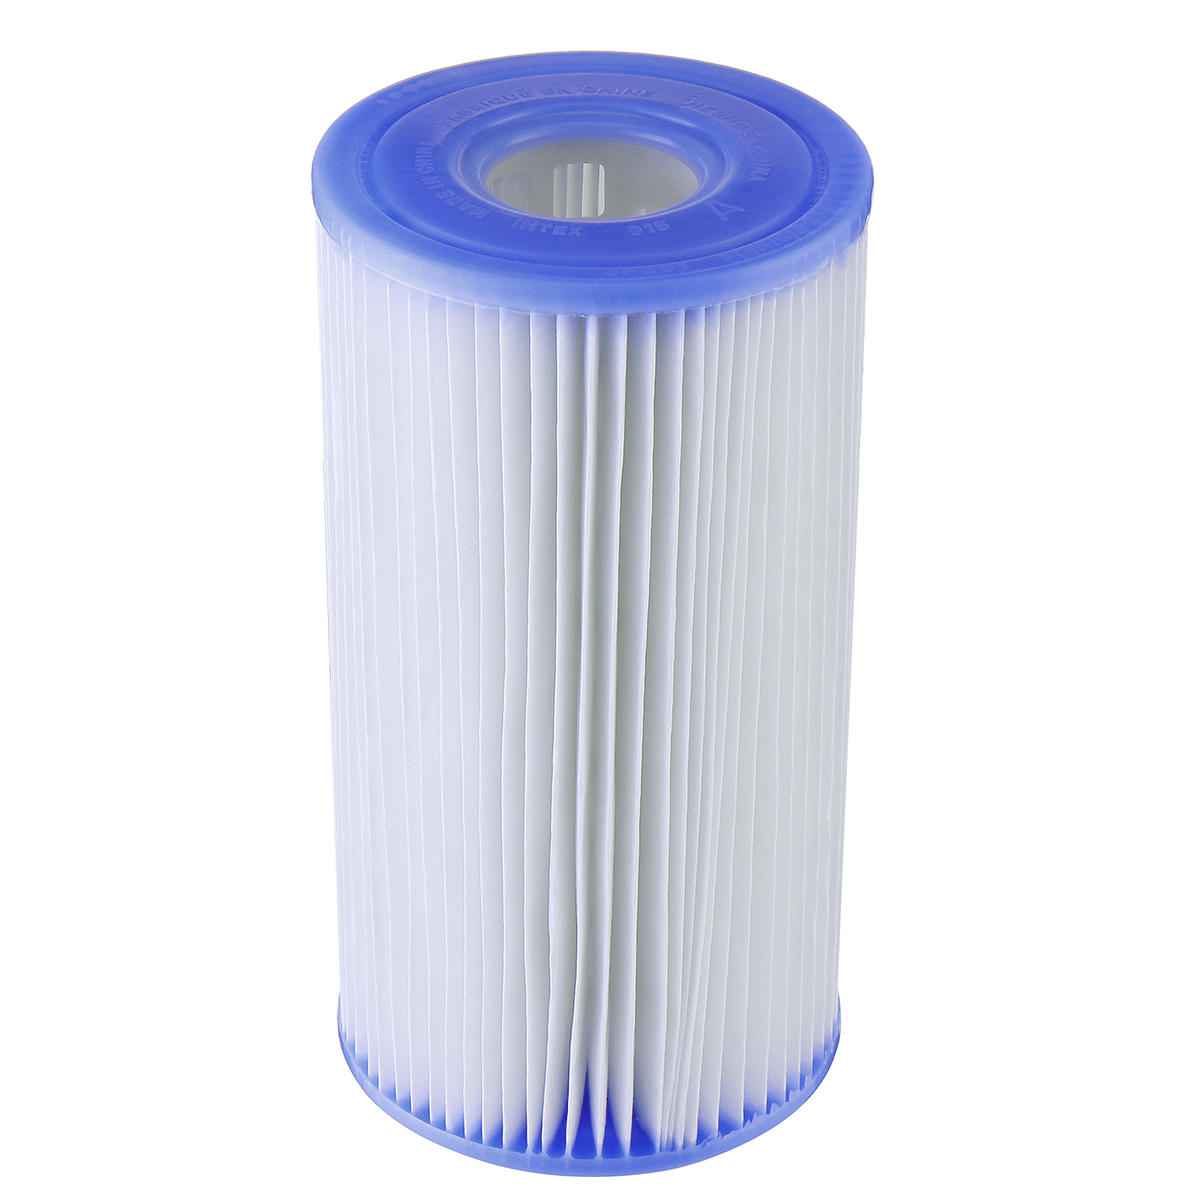 Swimming Pool Filter Pump Price Pump Filter Cartridge Swimming Pool Pump Replacement For Intex Filter Pumps 29000e